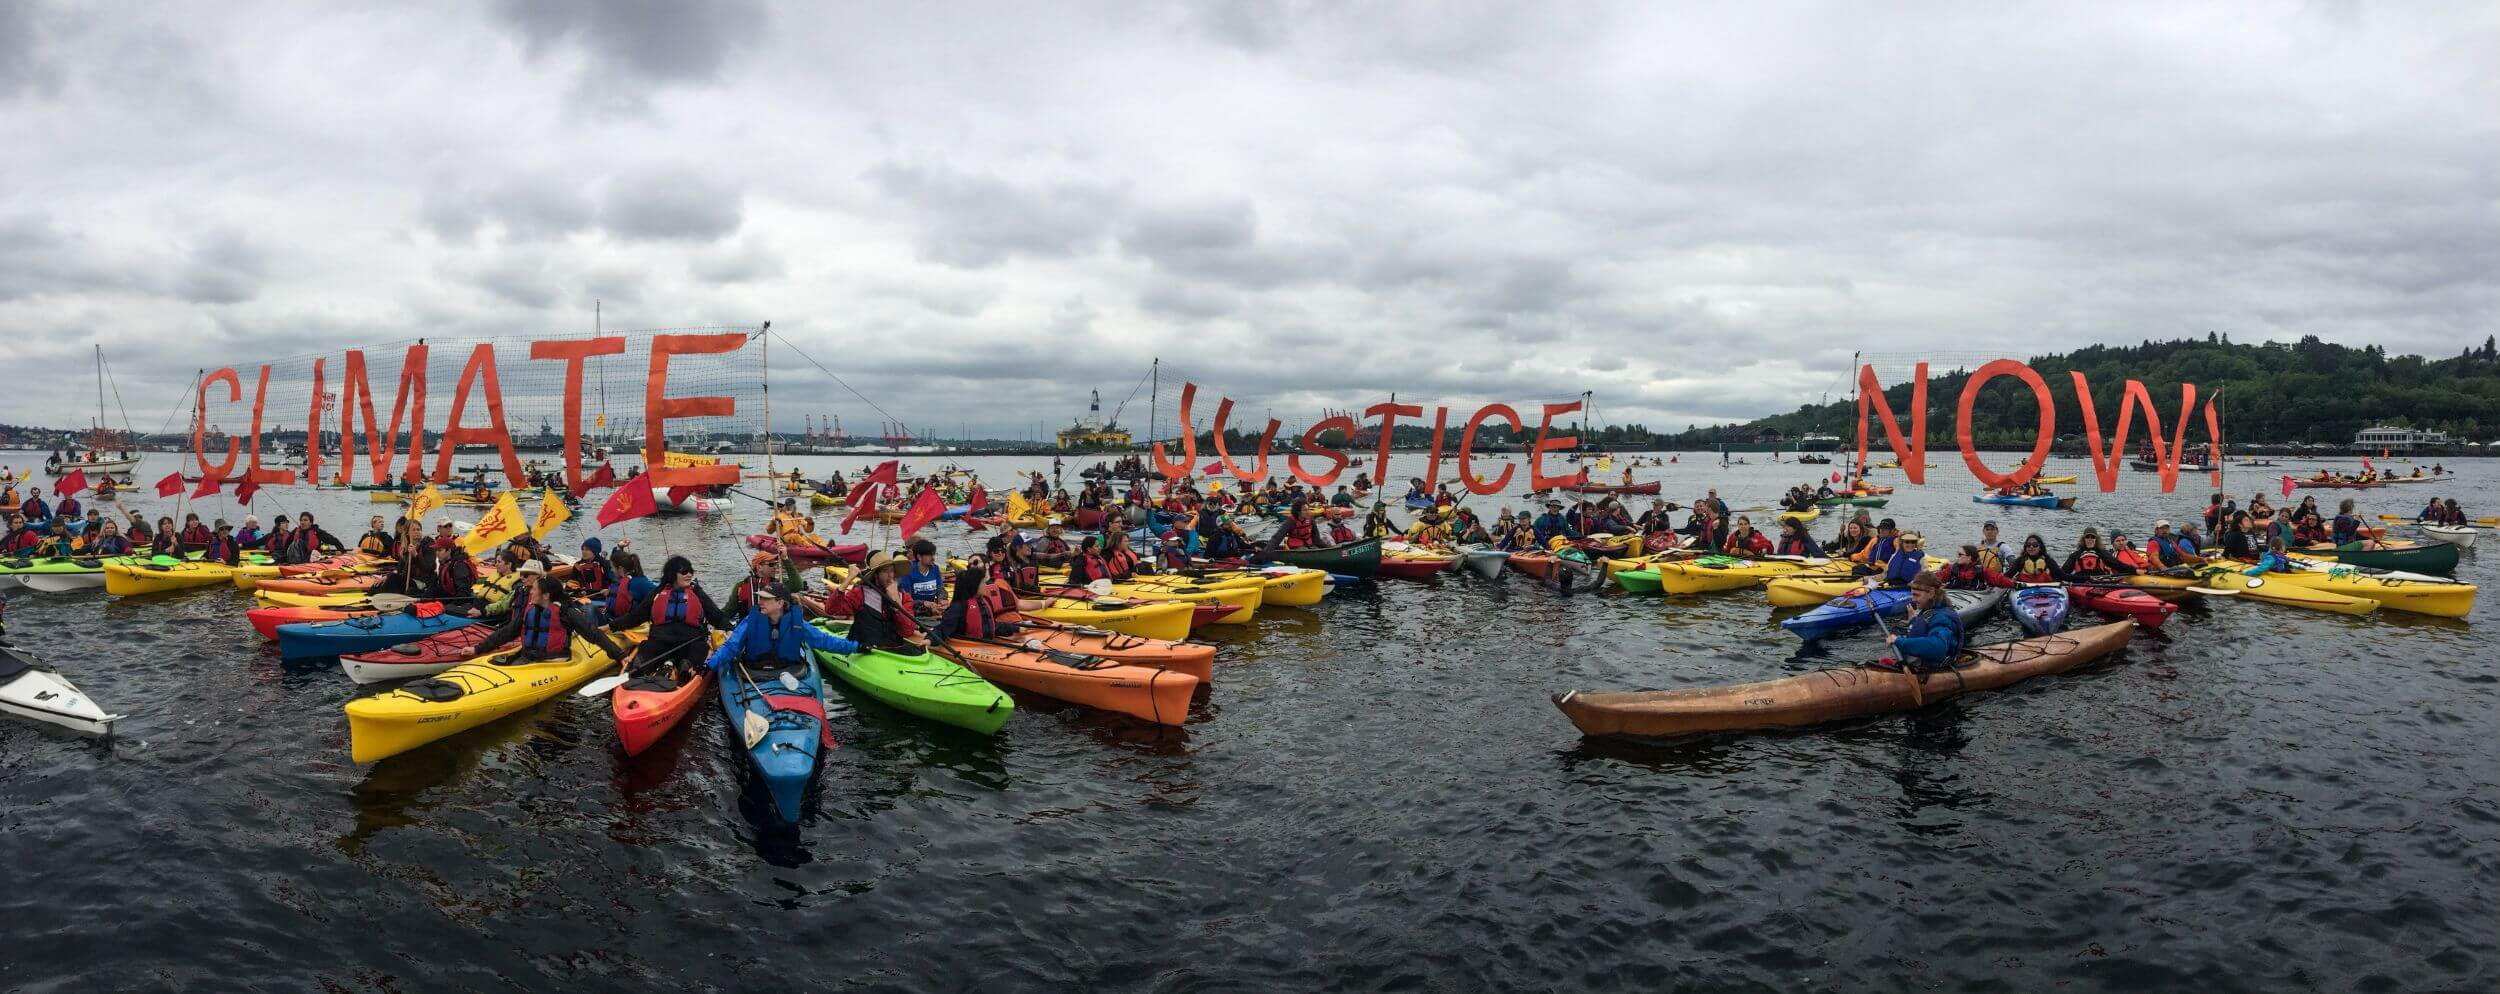 """Many kayakers on a body of water. Behind them, a giant sign reads """"CLIMATE JUSTICE."""" One lead kayaker is in front of them."""